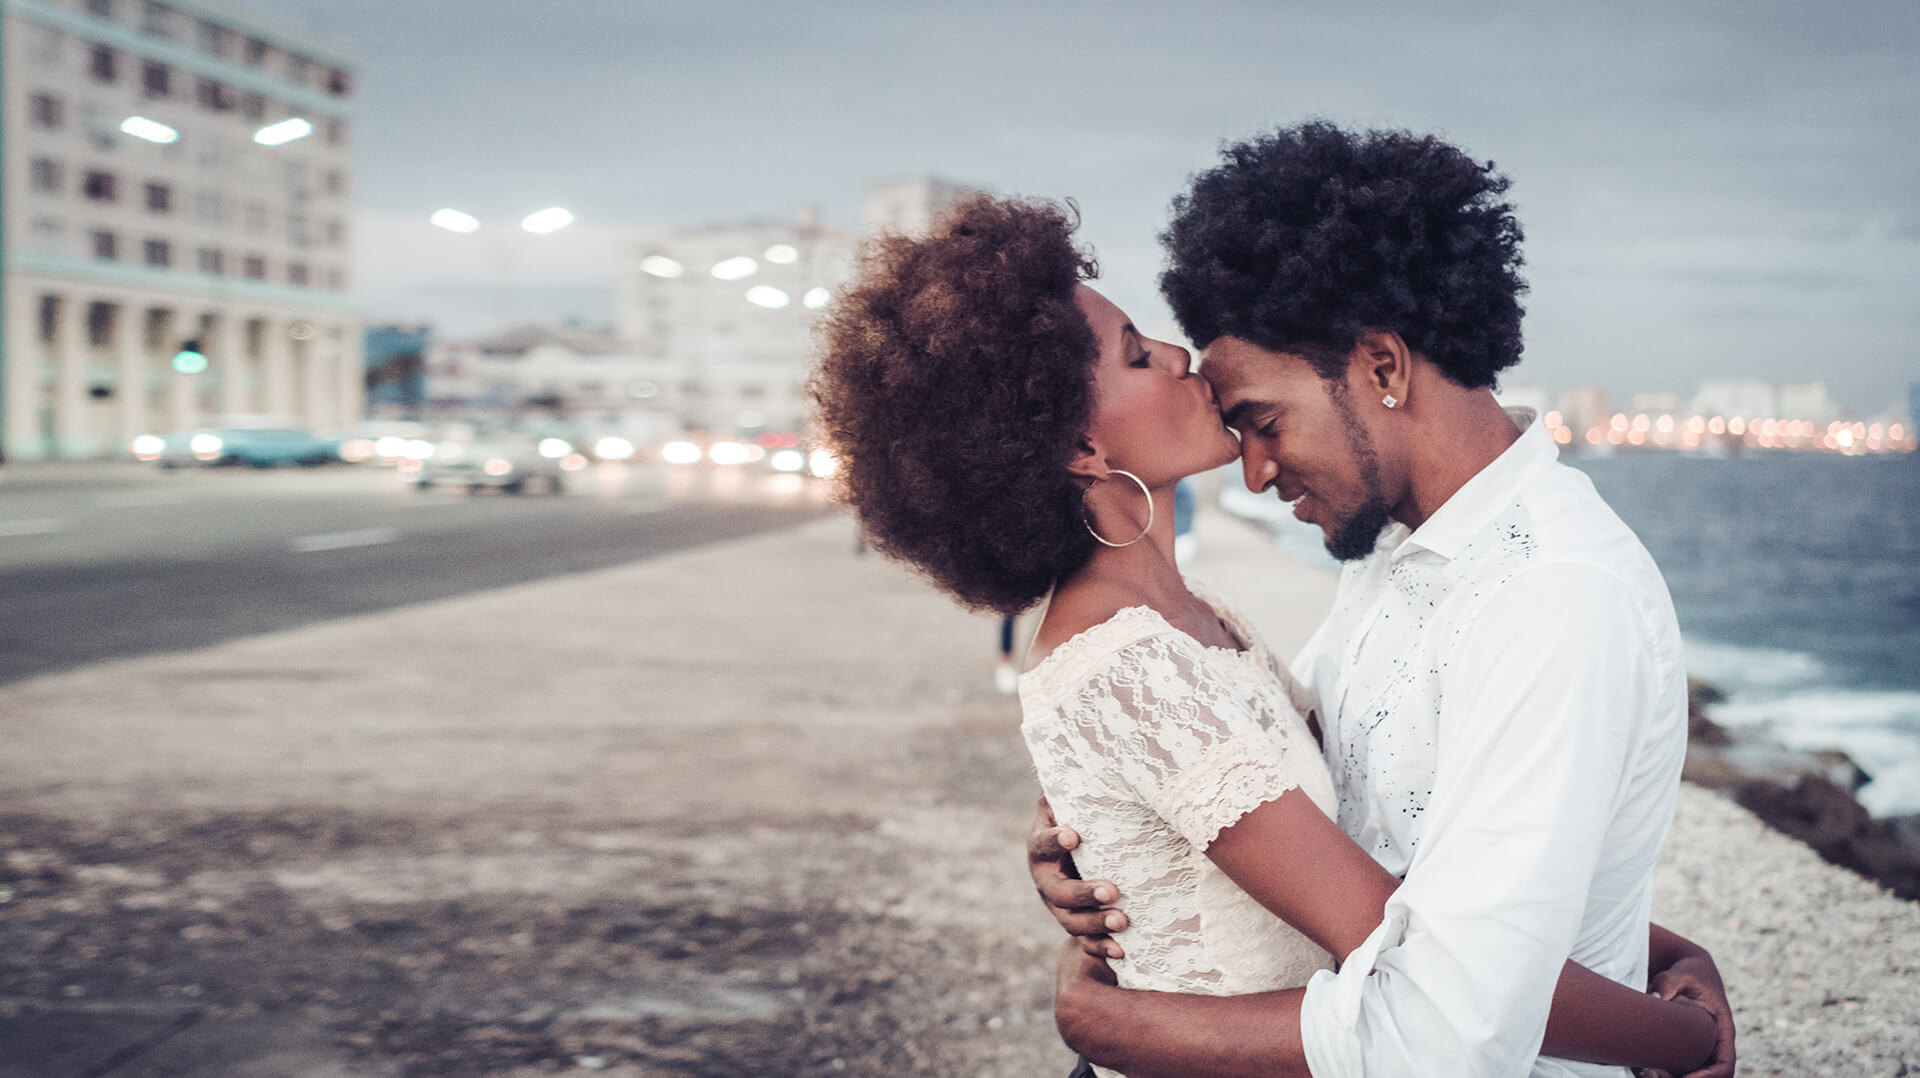 carribean dating symbolized by a woman who embraces a man and gives him a kiss on the forehead at the beach